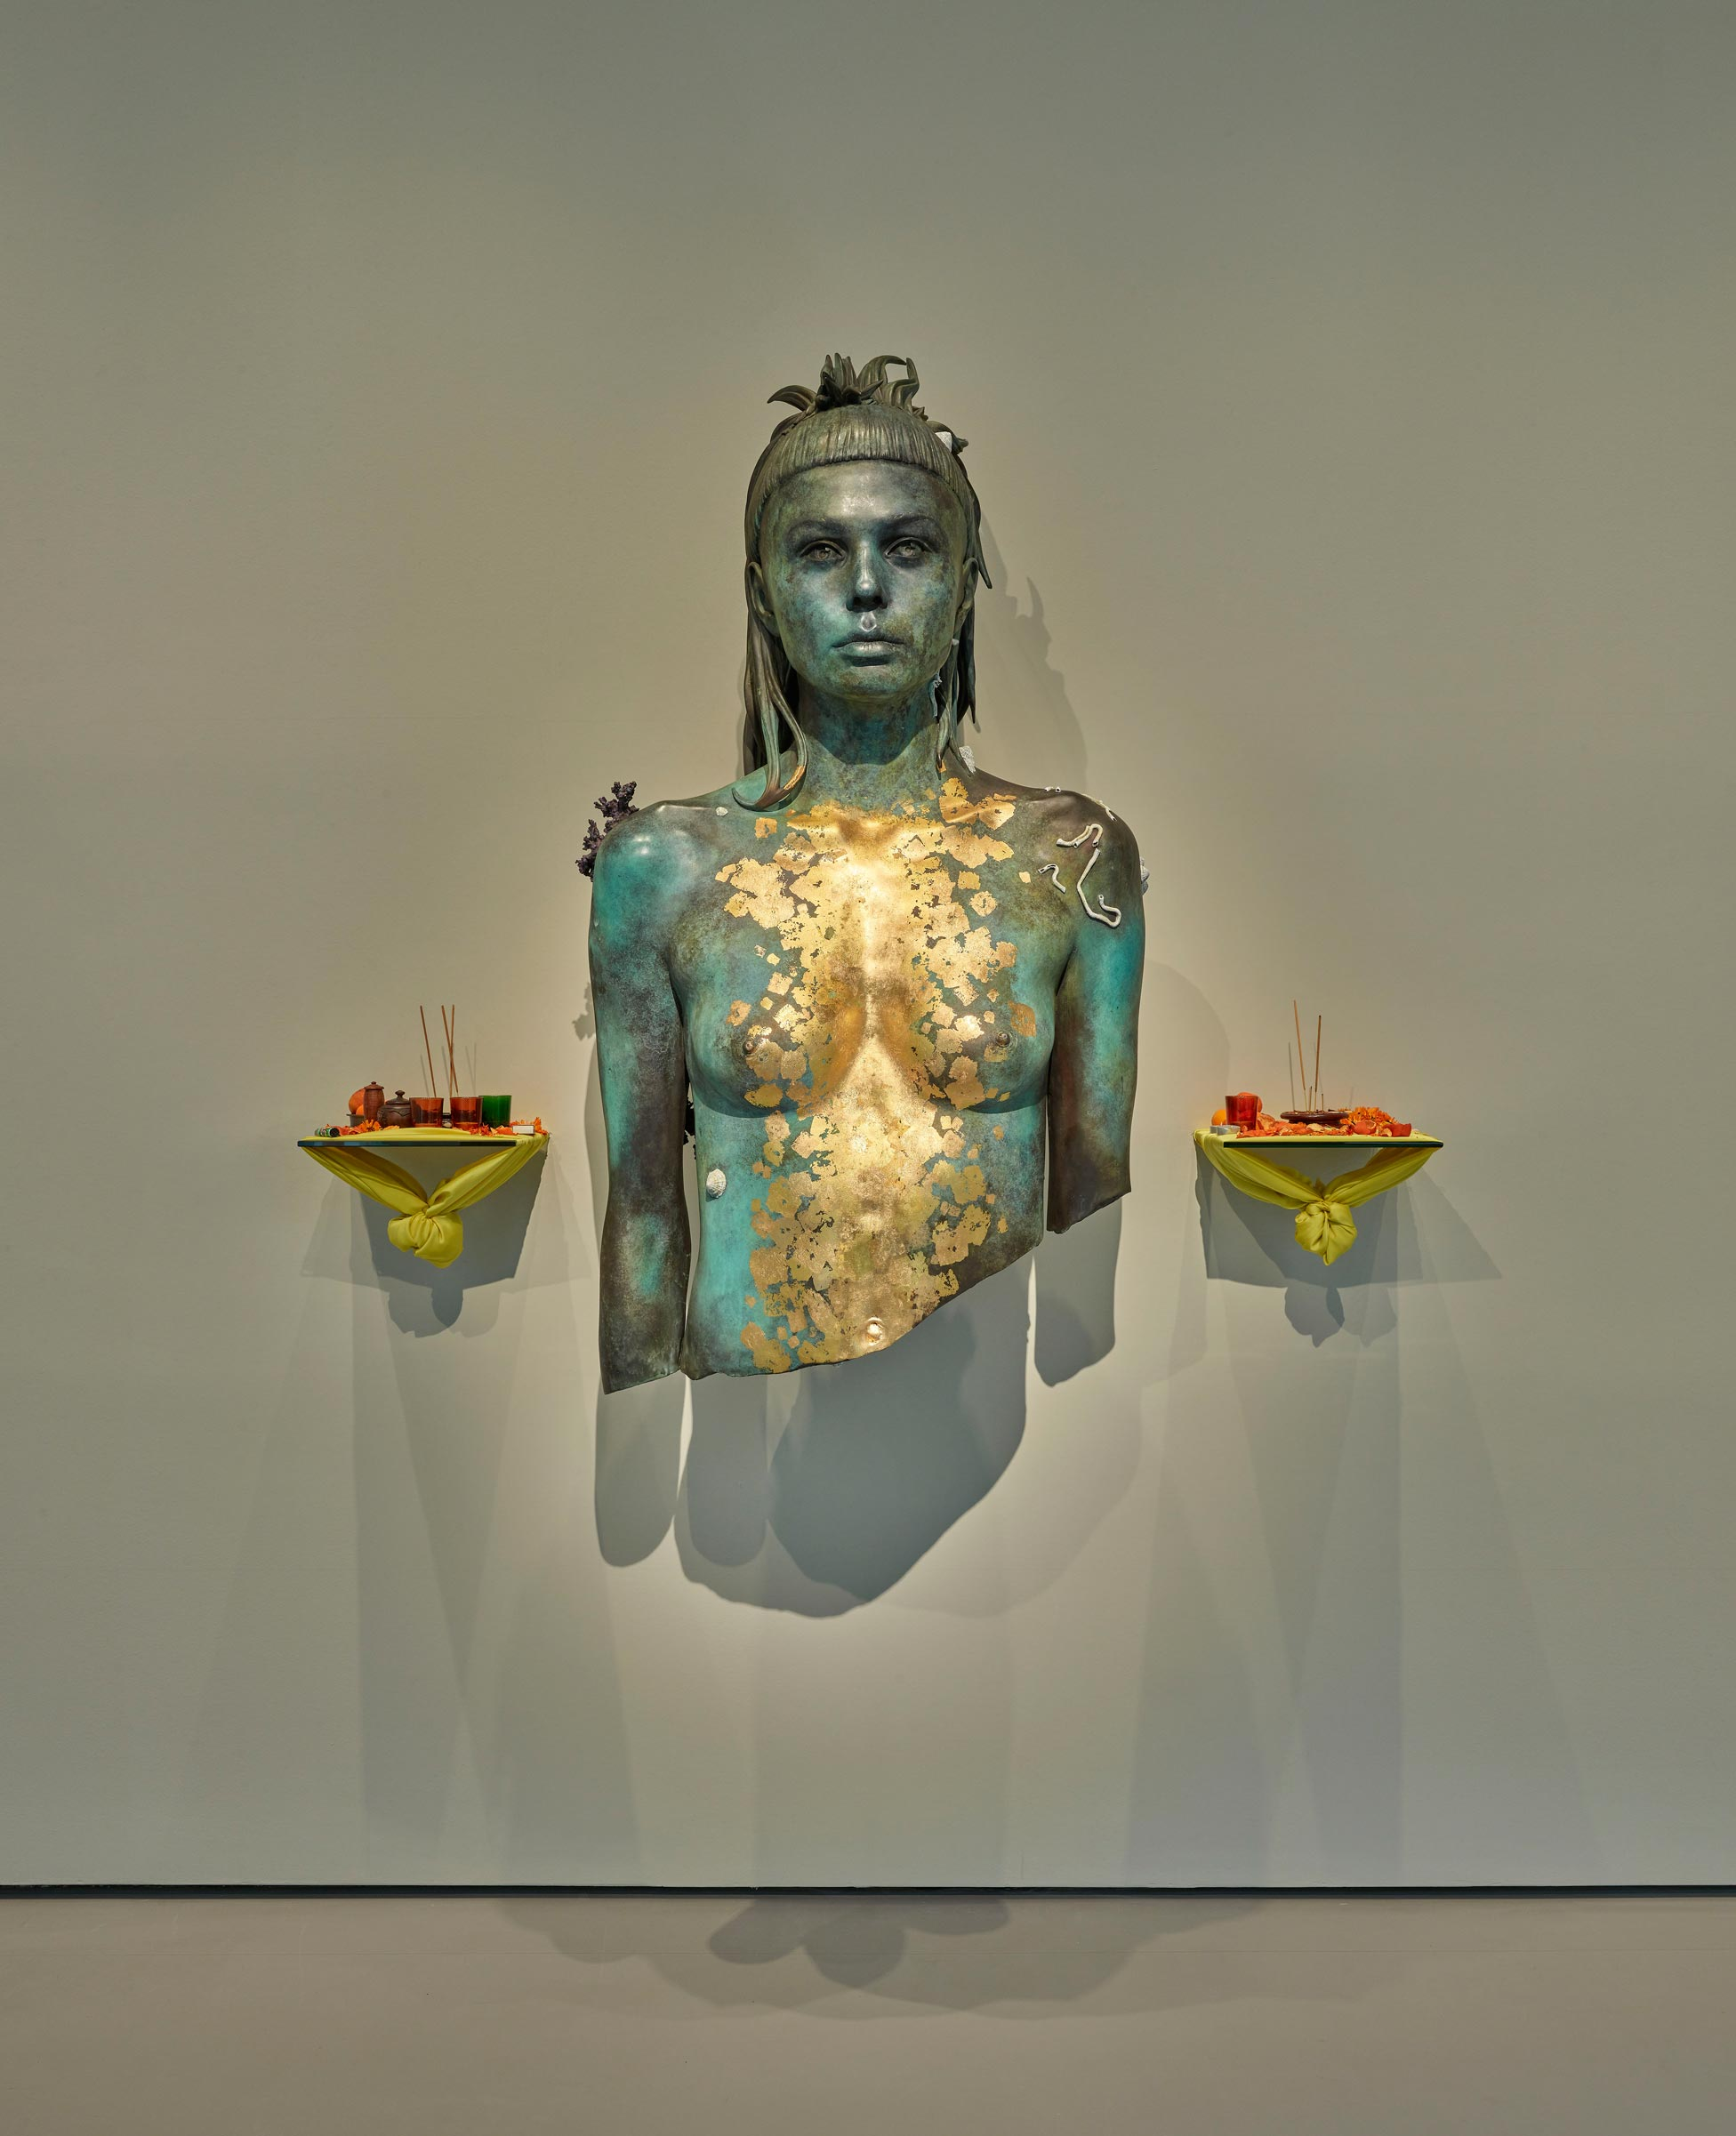 Room 11: Damien Hirst, Aspect of Katie Ishtar ¥o-landi. Photographed by Prudence Cuming Associates © Damien Hirst and Science Ltd. All rights reserved, DACS/SIAE 2017